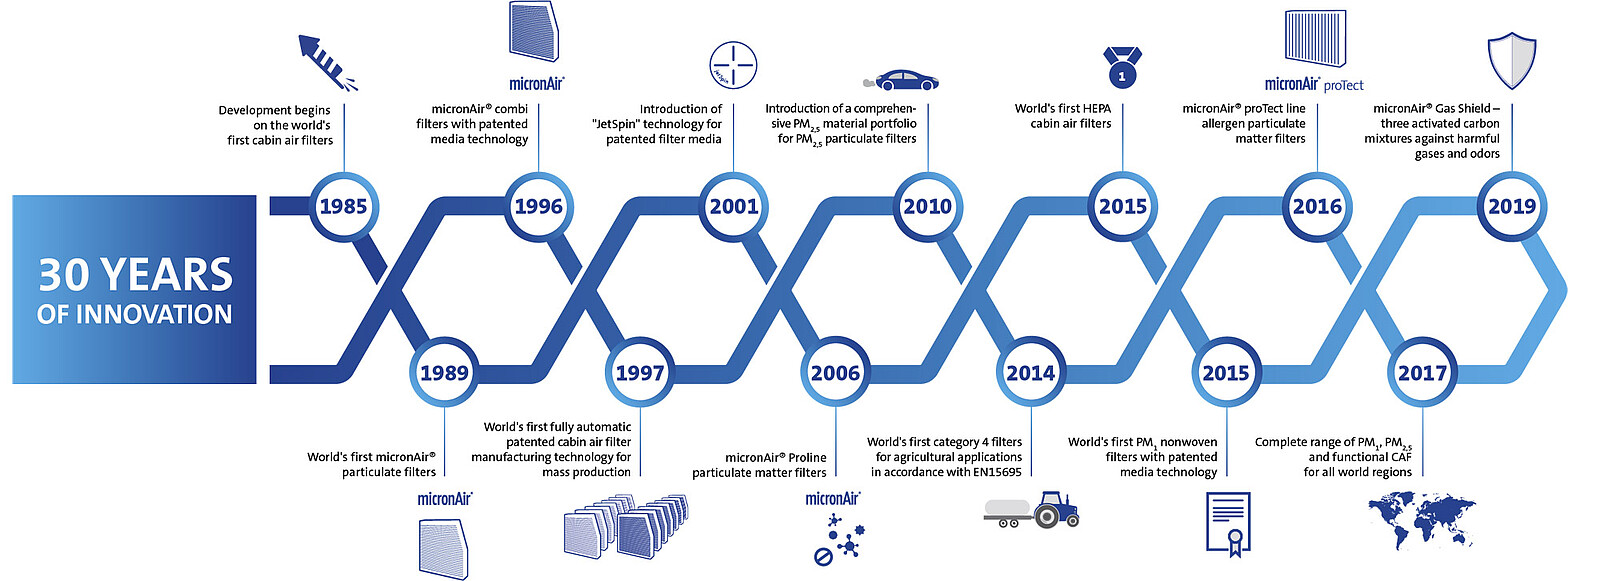 30 years of micronAir innovation